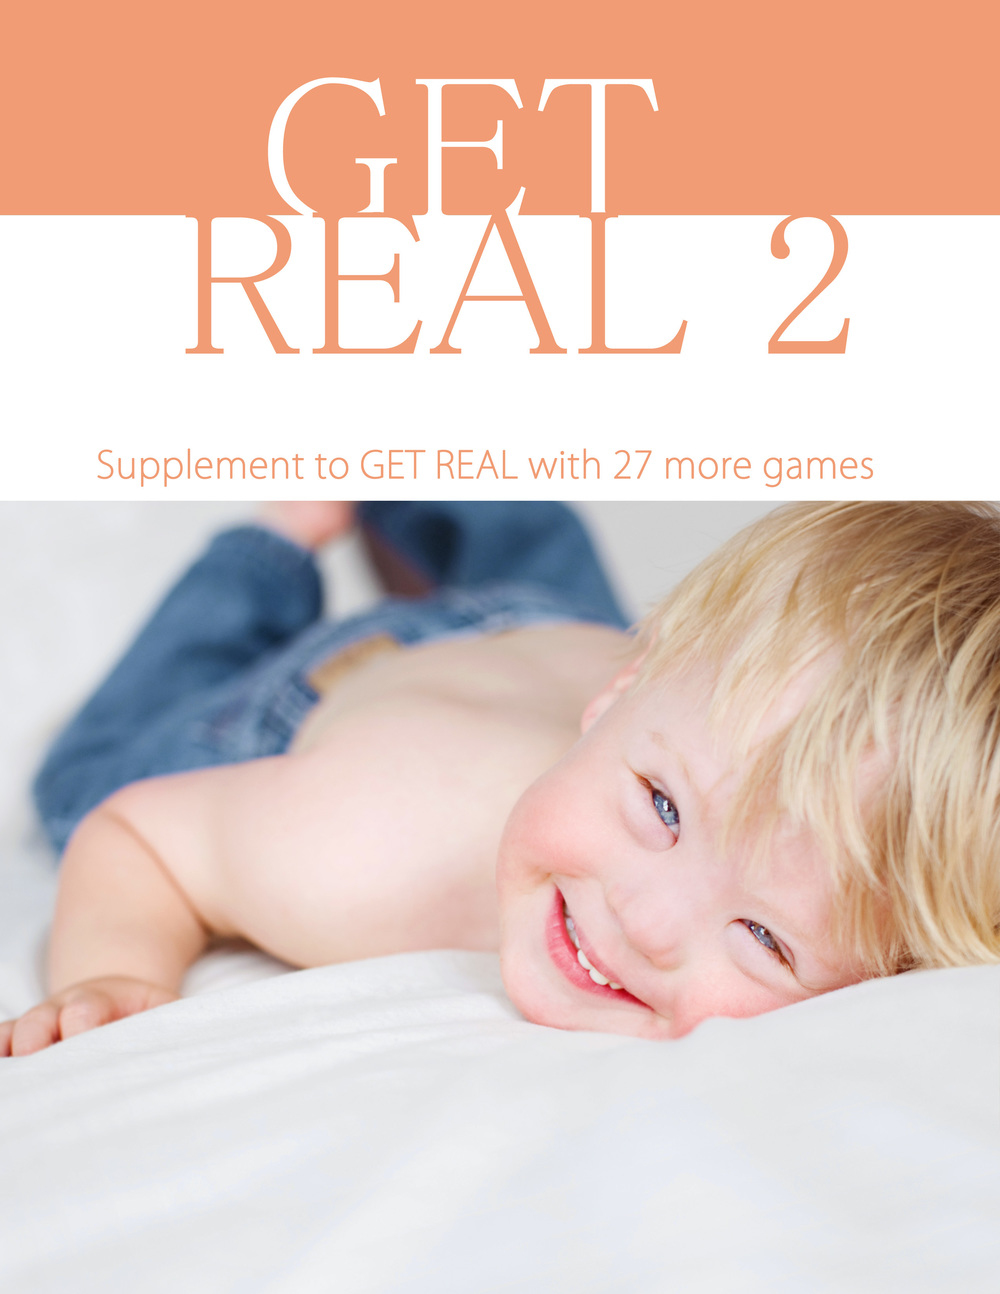 Get Real 2 - $39